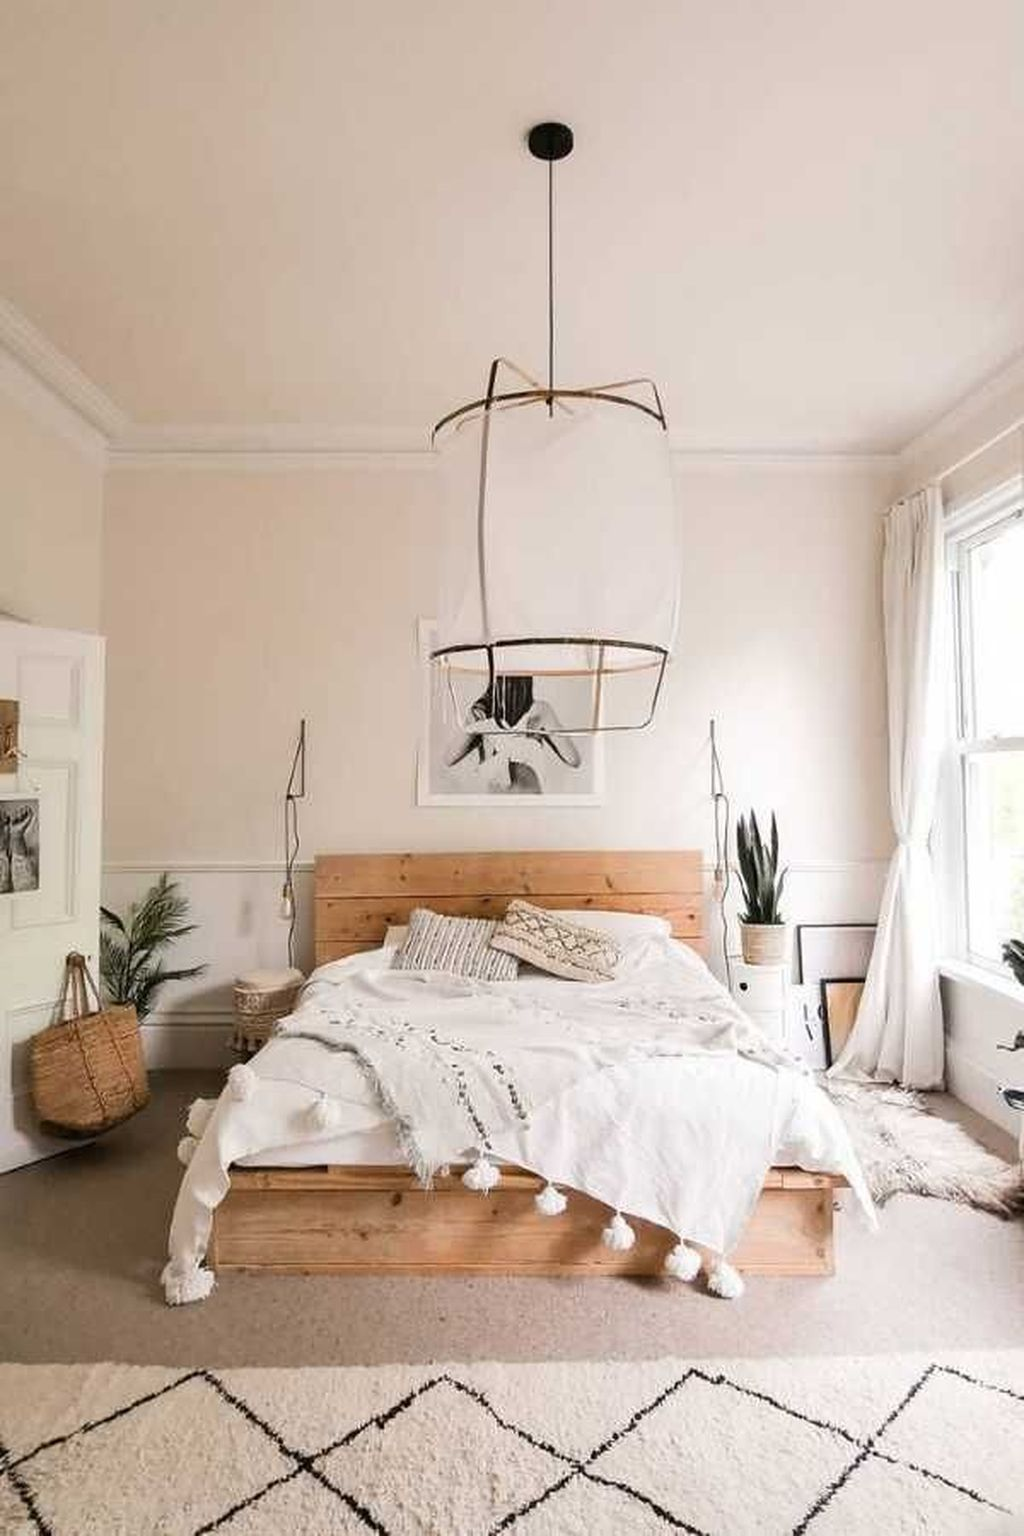 31 Lovely Cozy Bedroom Ideas Make You Feel Relax Trendehouse Simple Bedroom Bedroom Inspirations Simple Bedroom Decor